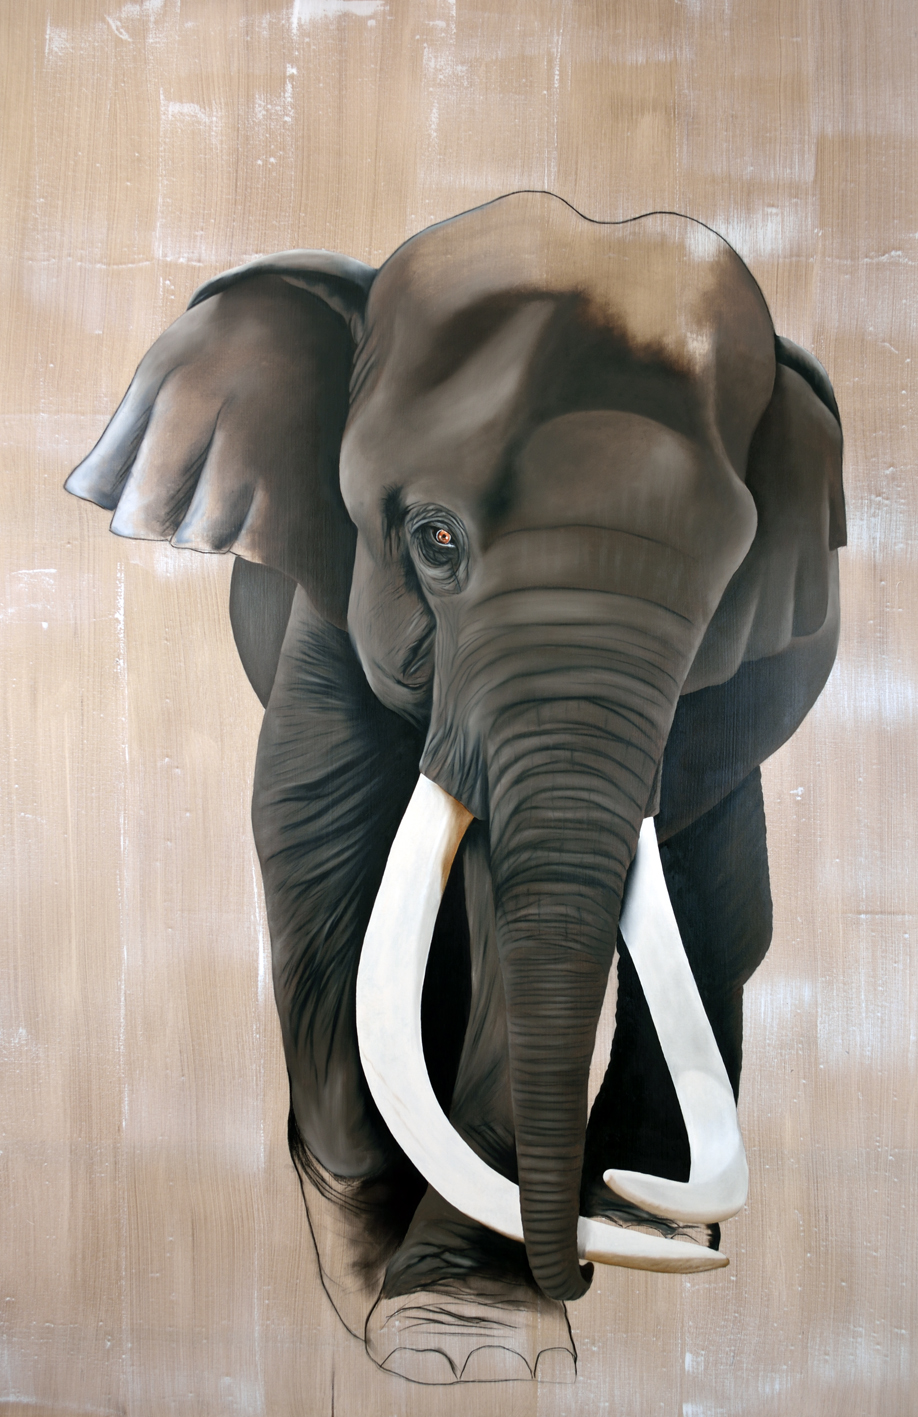 ELEPHAS-MAXIMUS ELEPHANT-INDIAN-ELEPHANT-ASIATIC-ELEPHANT-ELEPHAS-MAXIMUS Thierry Bisch painter animals painting art decoration hotel design interior luxury nature biodiversity conservation